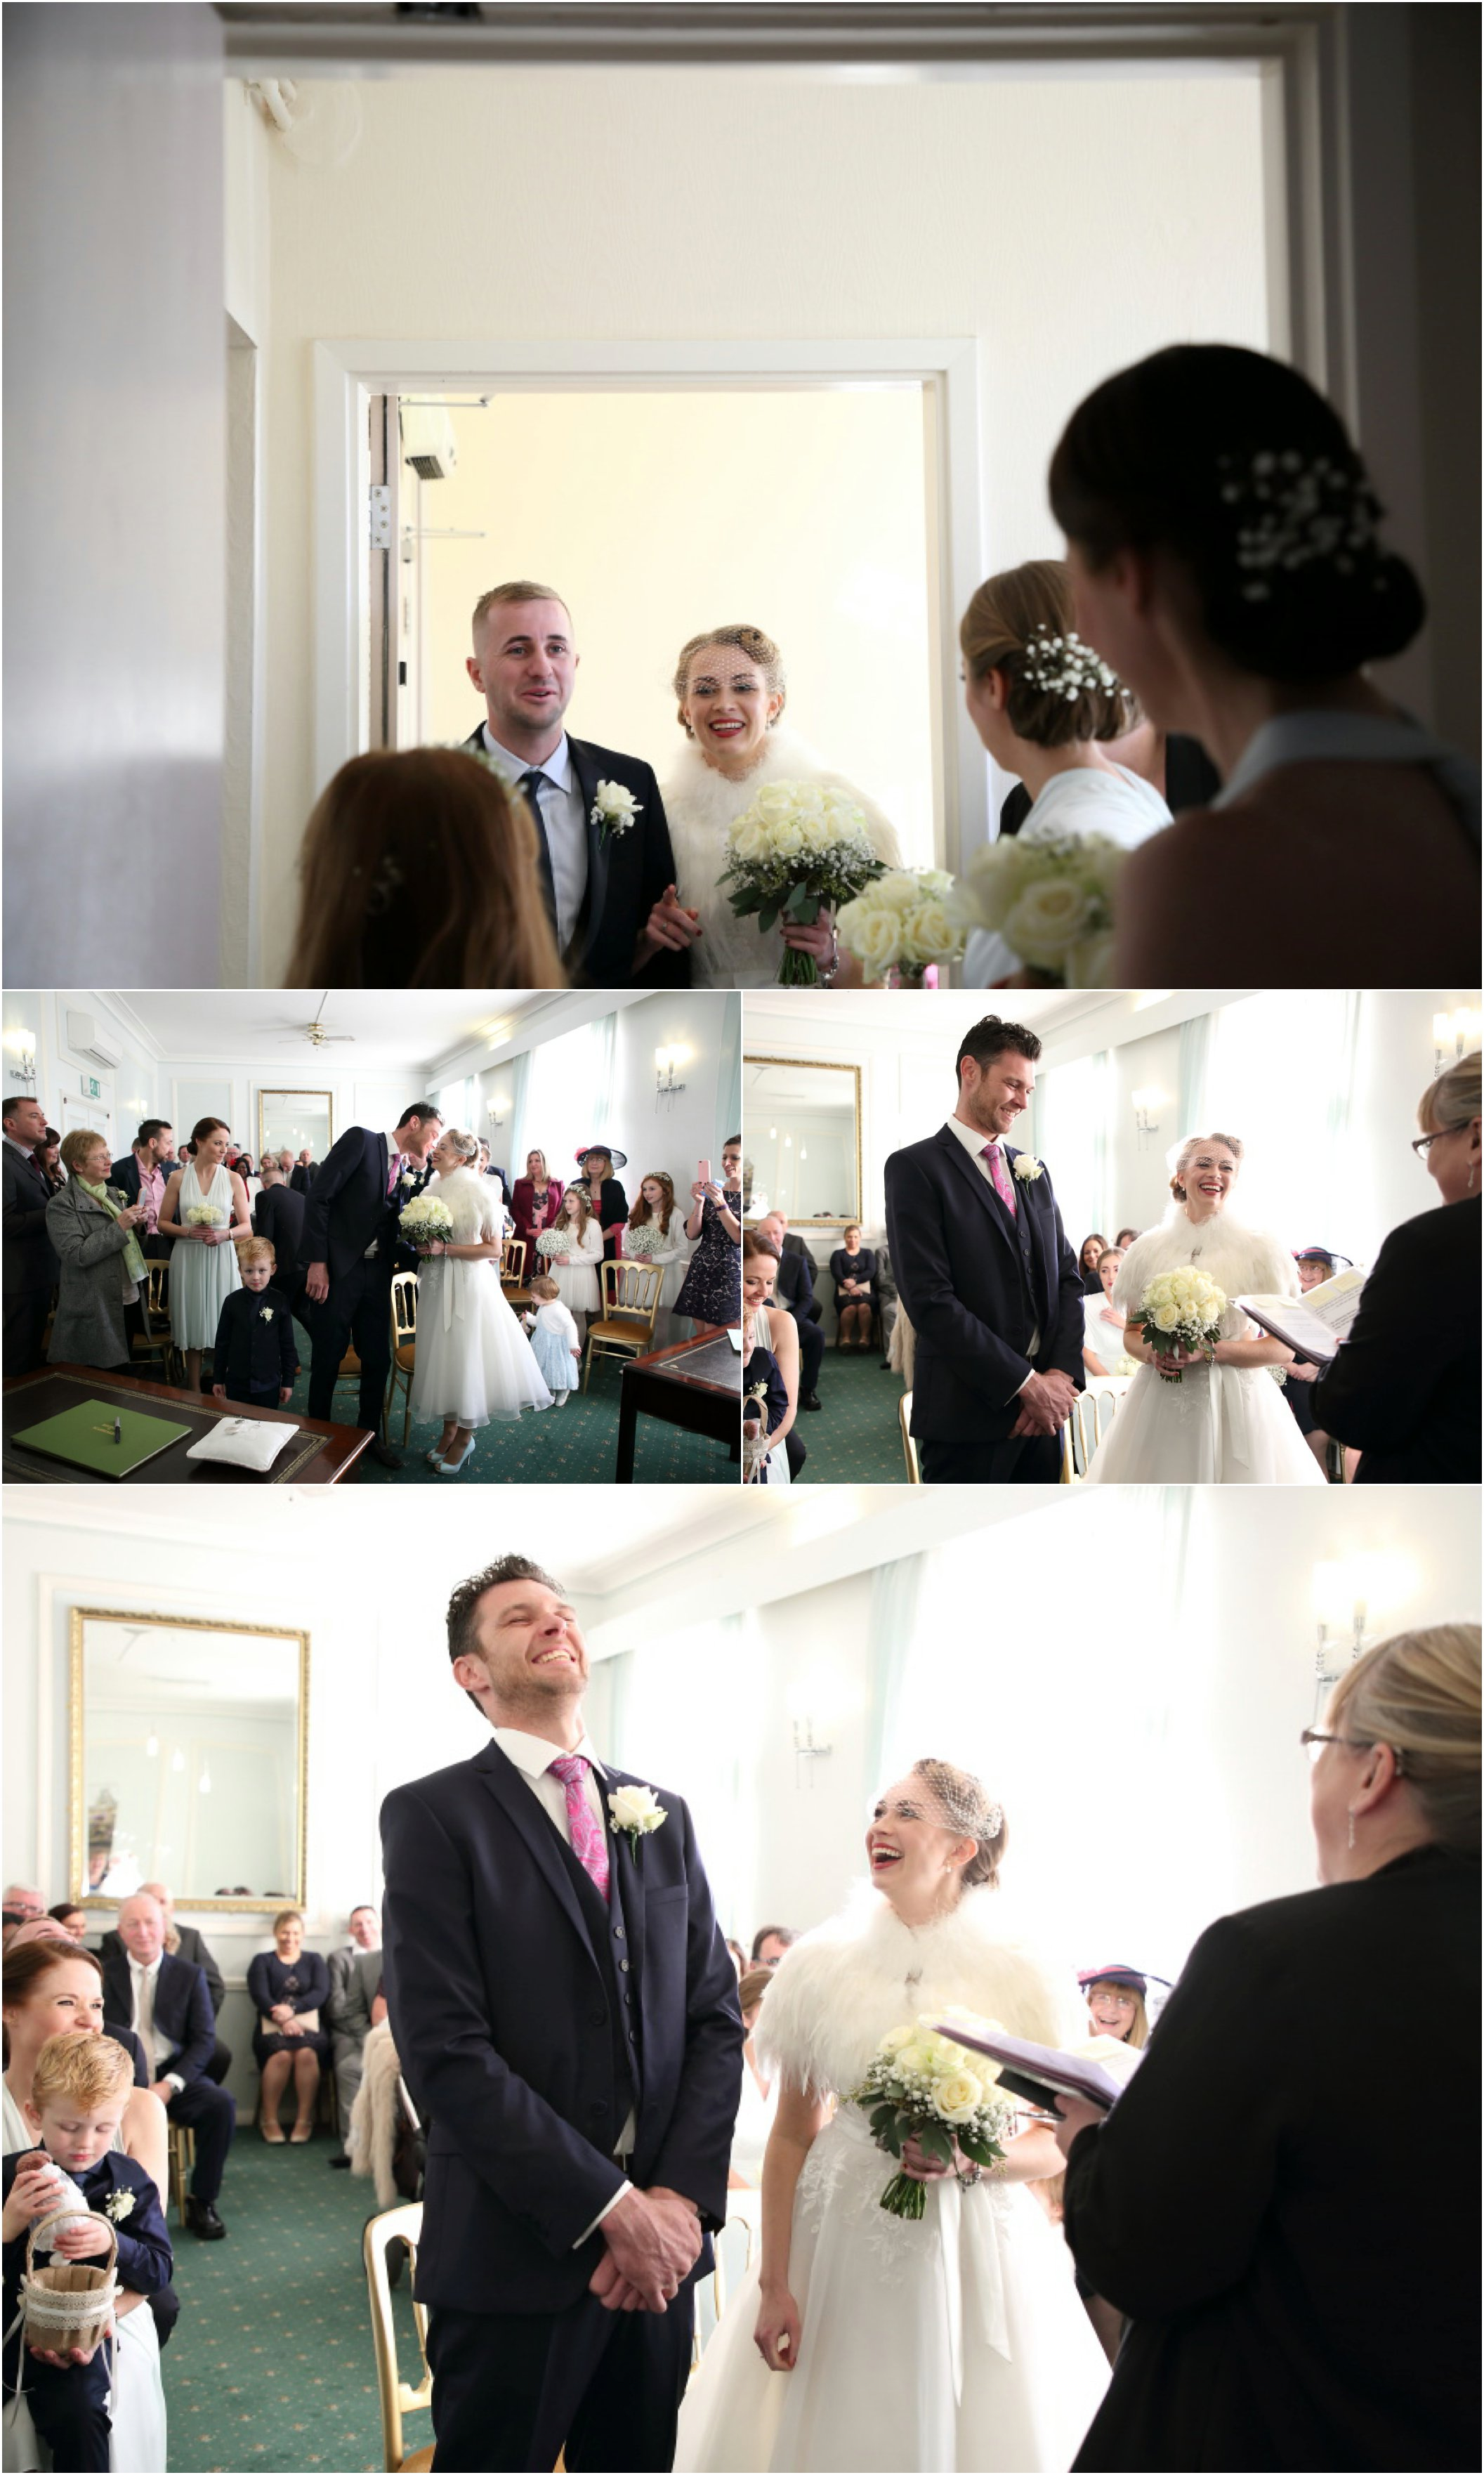 honest fun wedding photography at shire hall cambridge